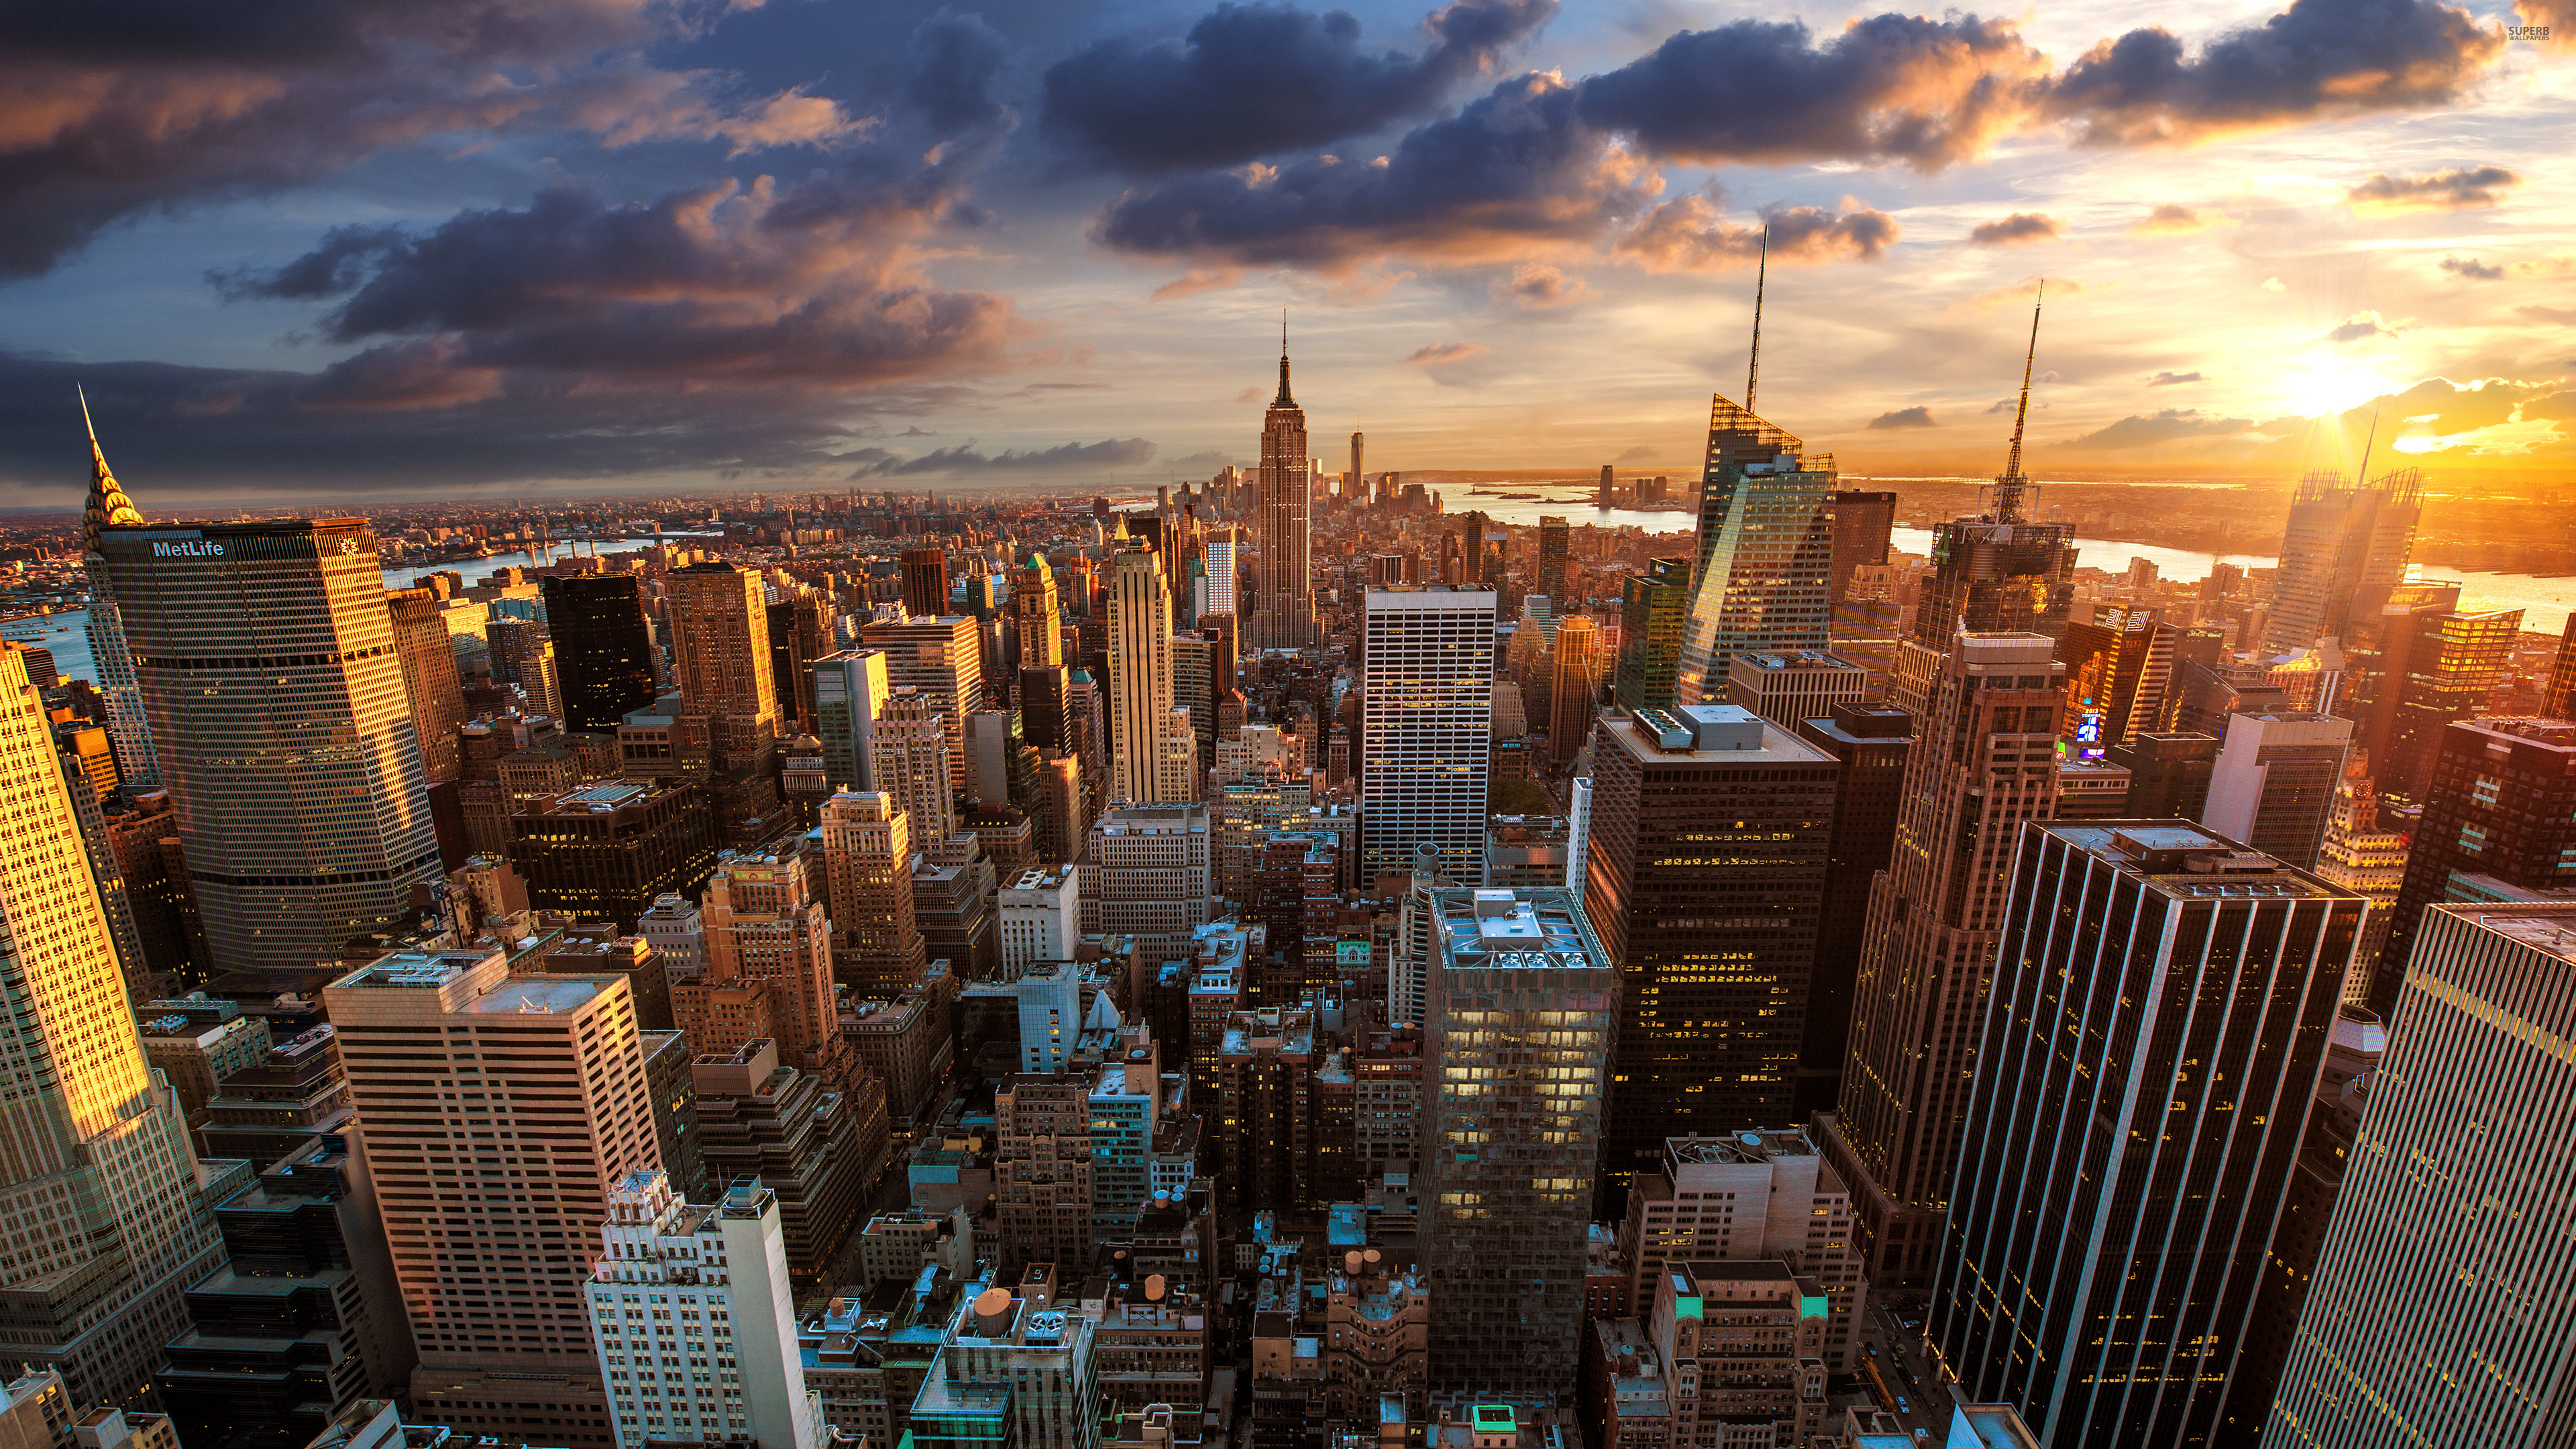 New york city backgrounds pixelstalk new york city backgrounds hd voltagebd Images